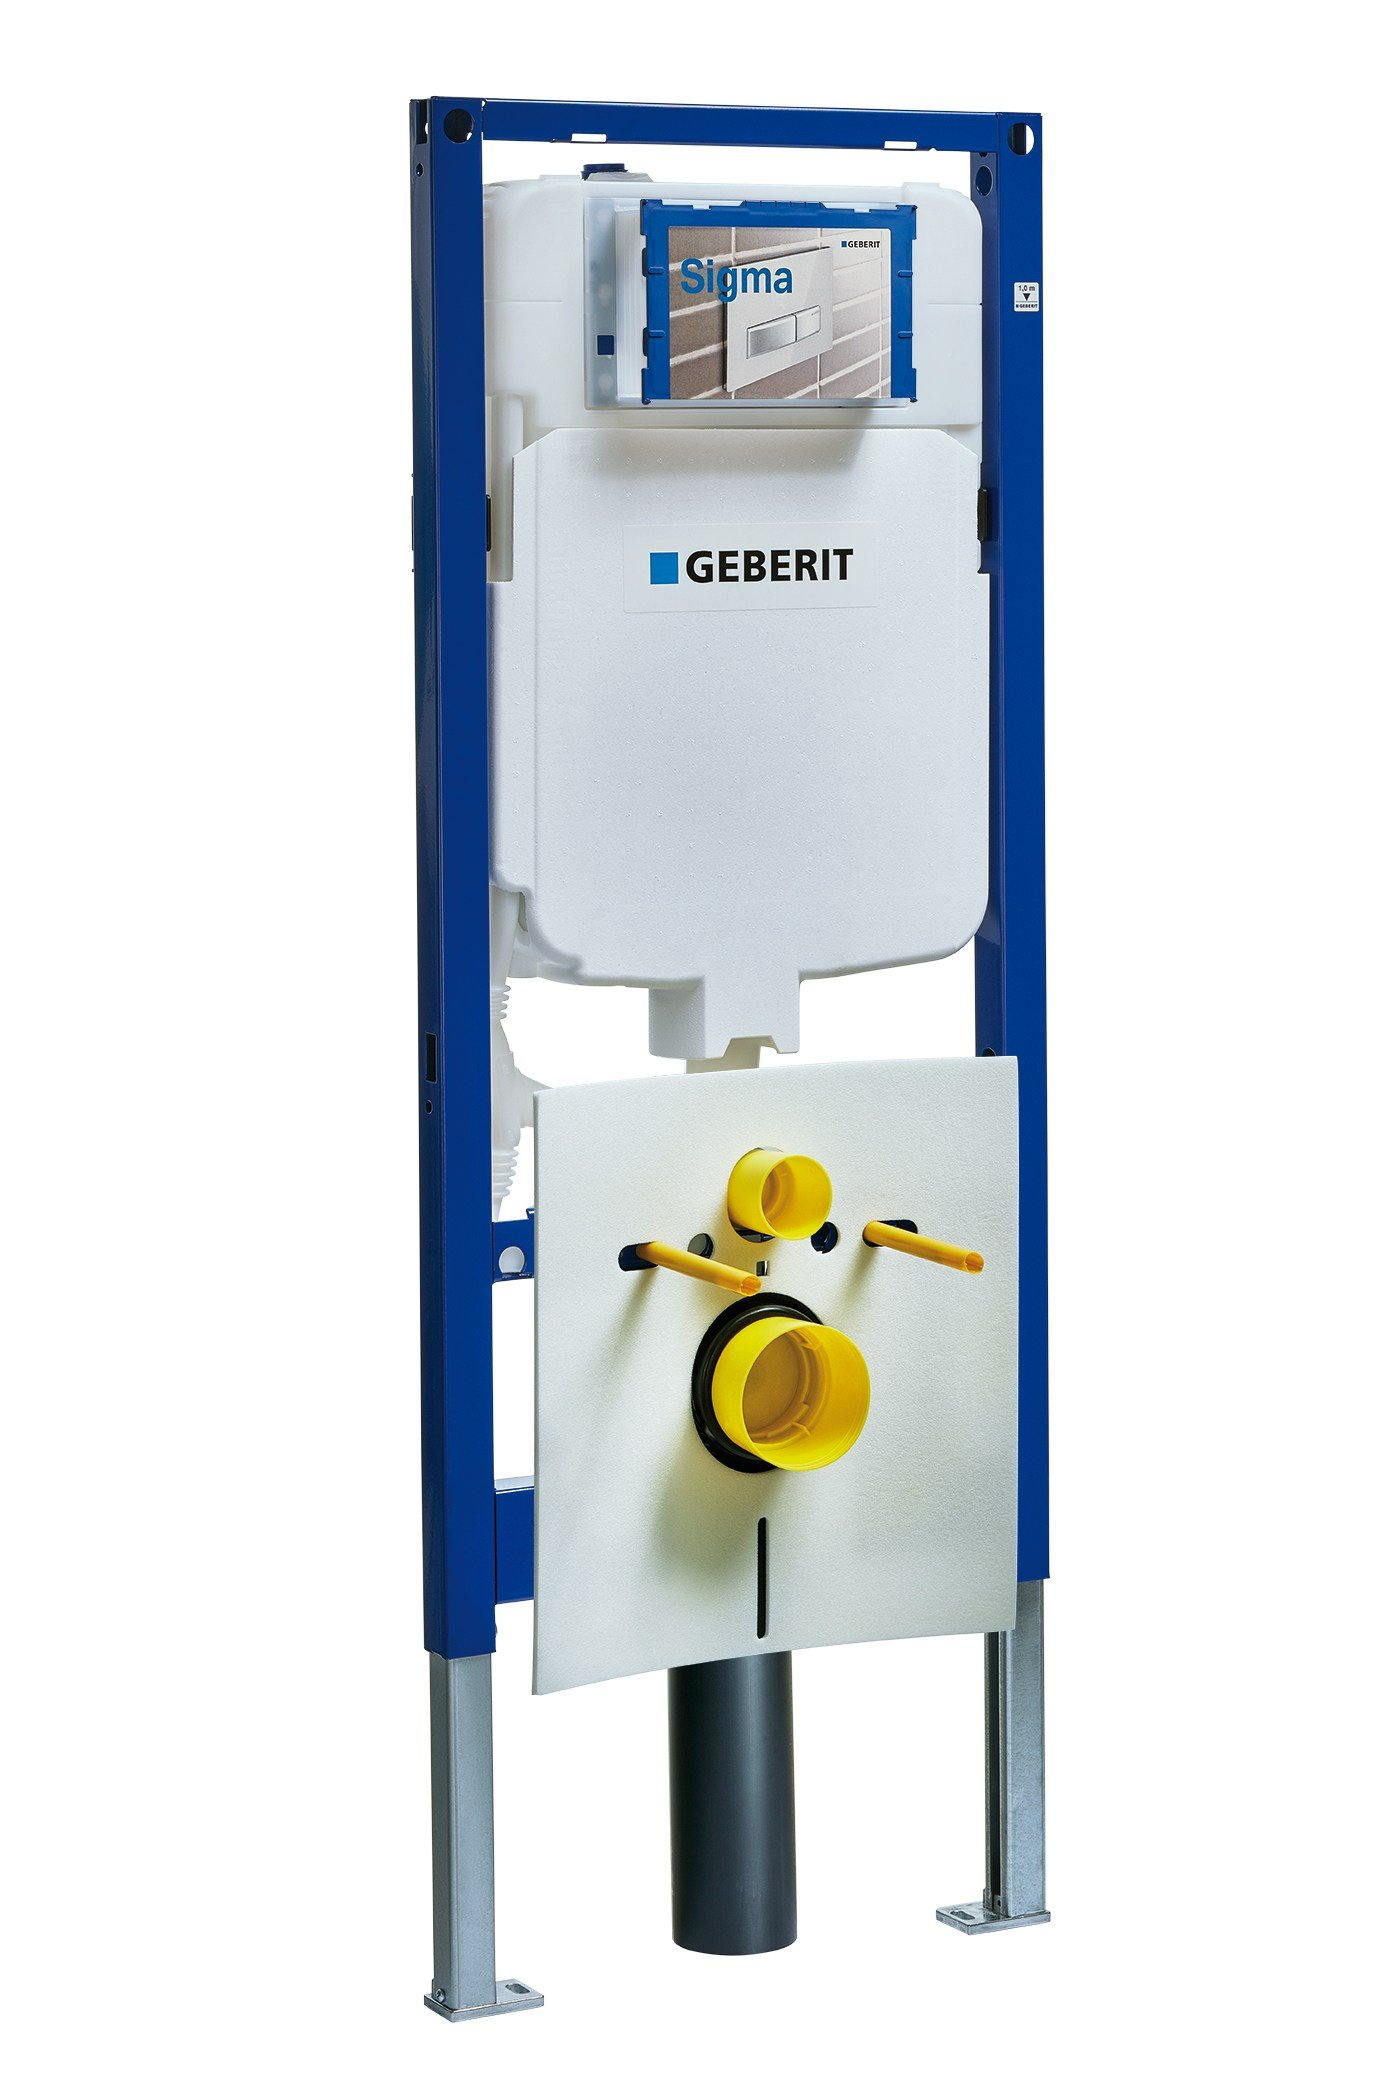 Concealed wc cistern duofix by geberit italia for Geberit products